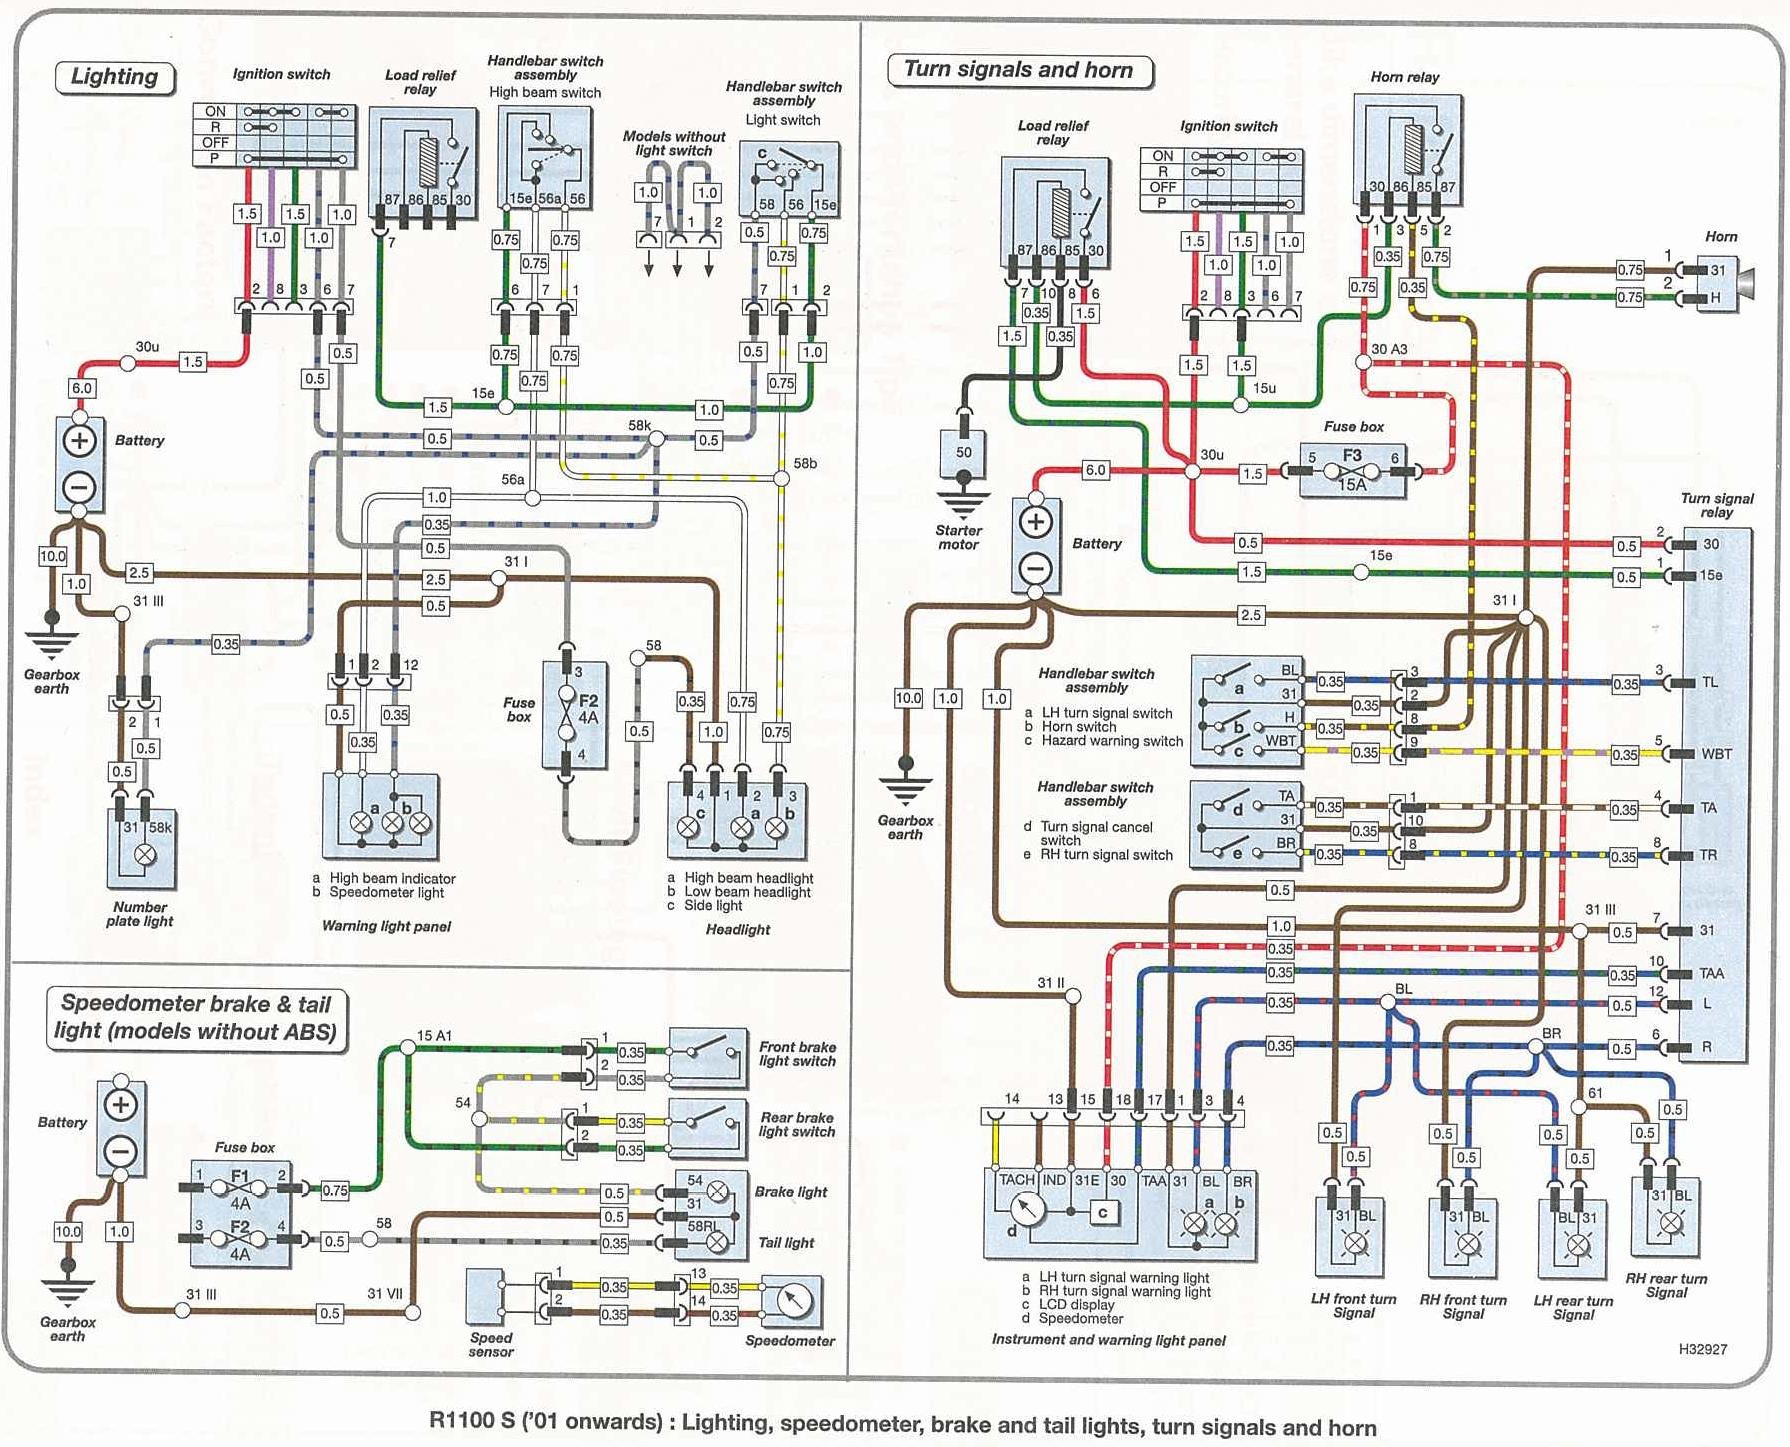 wiring06 bmw r1100s wiring diagrams e32 wiring diagram at virtualis.co